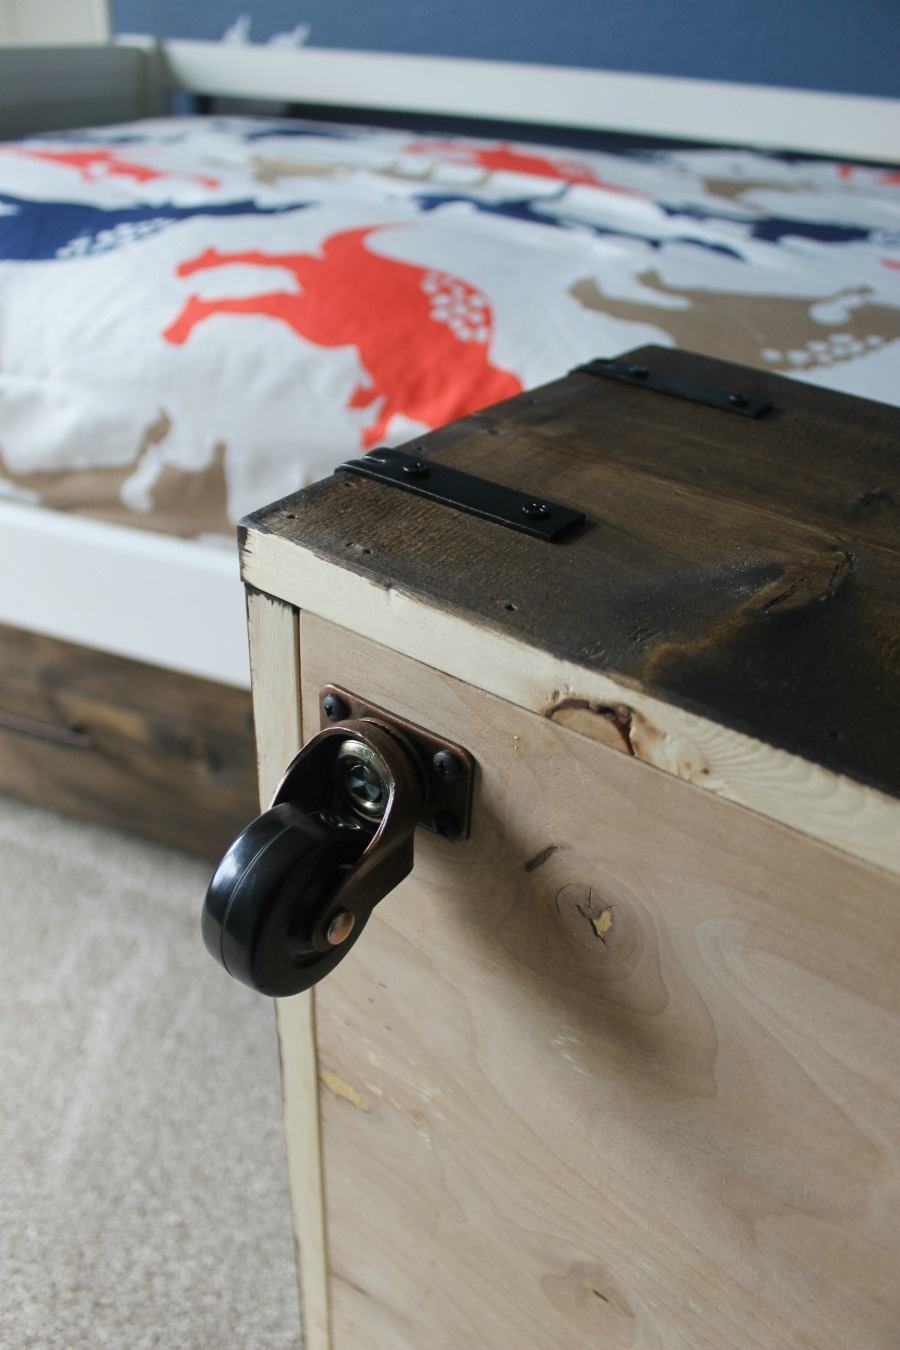 Casters on Under Bed Storage Box